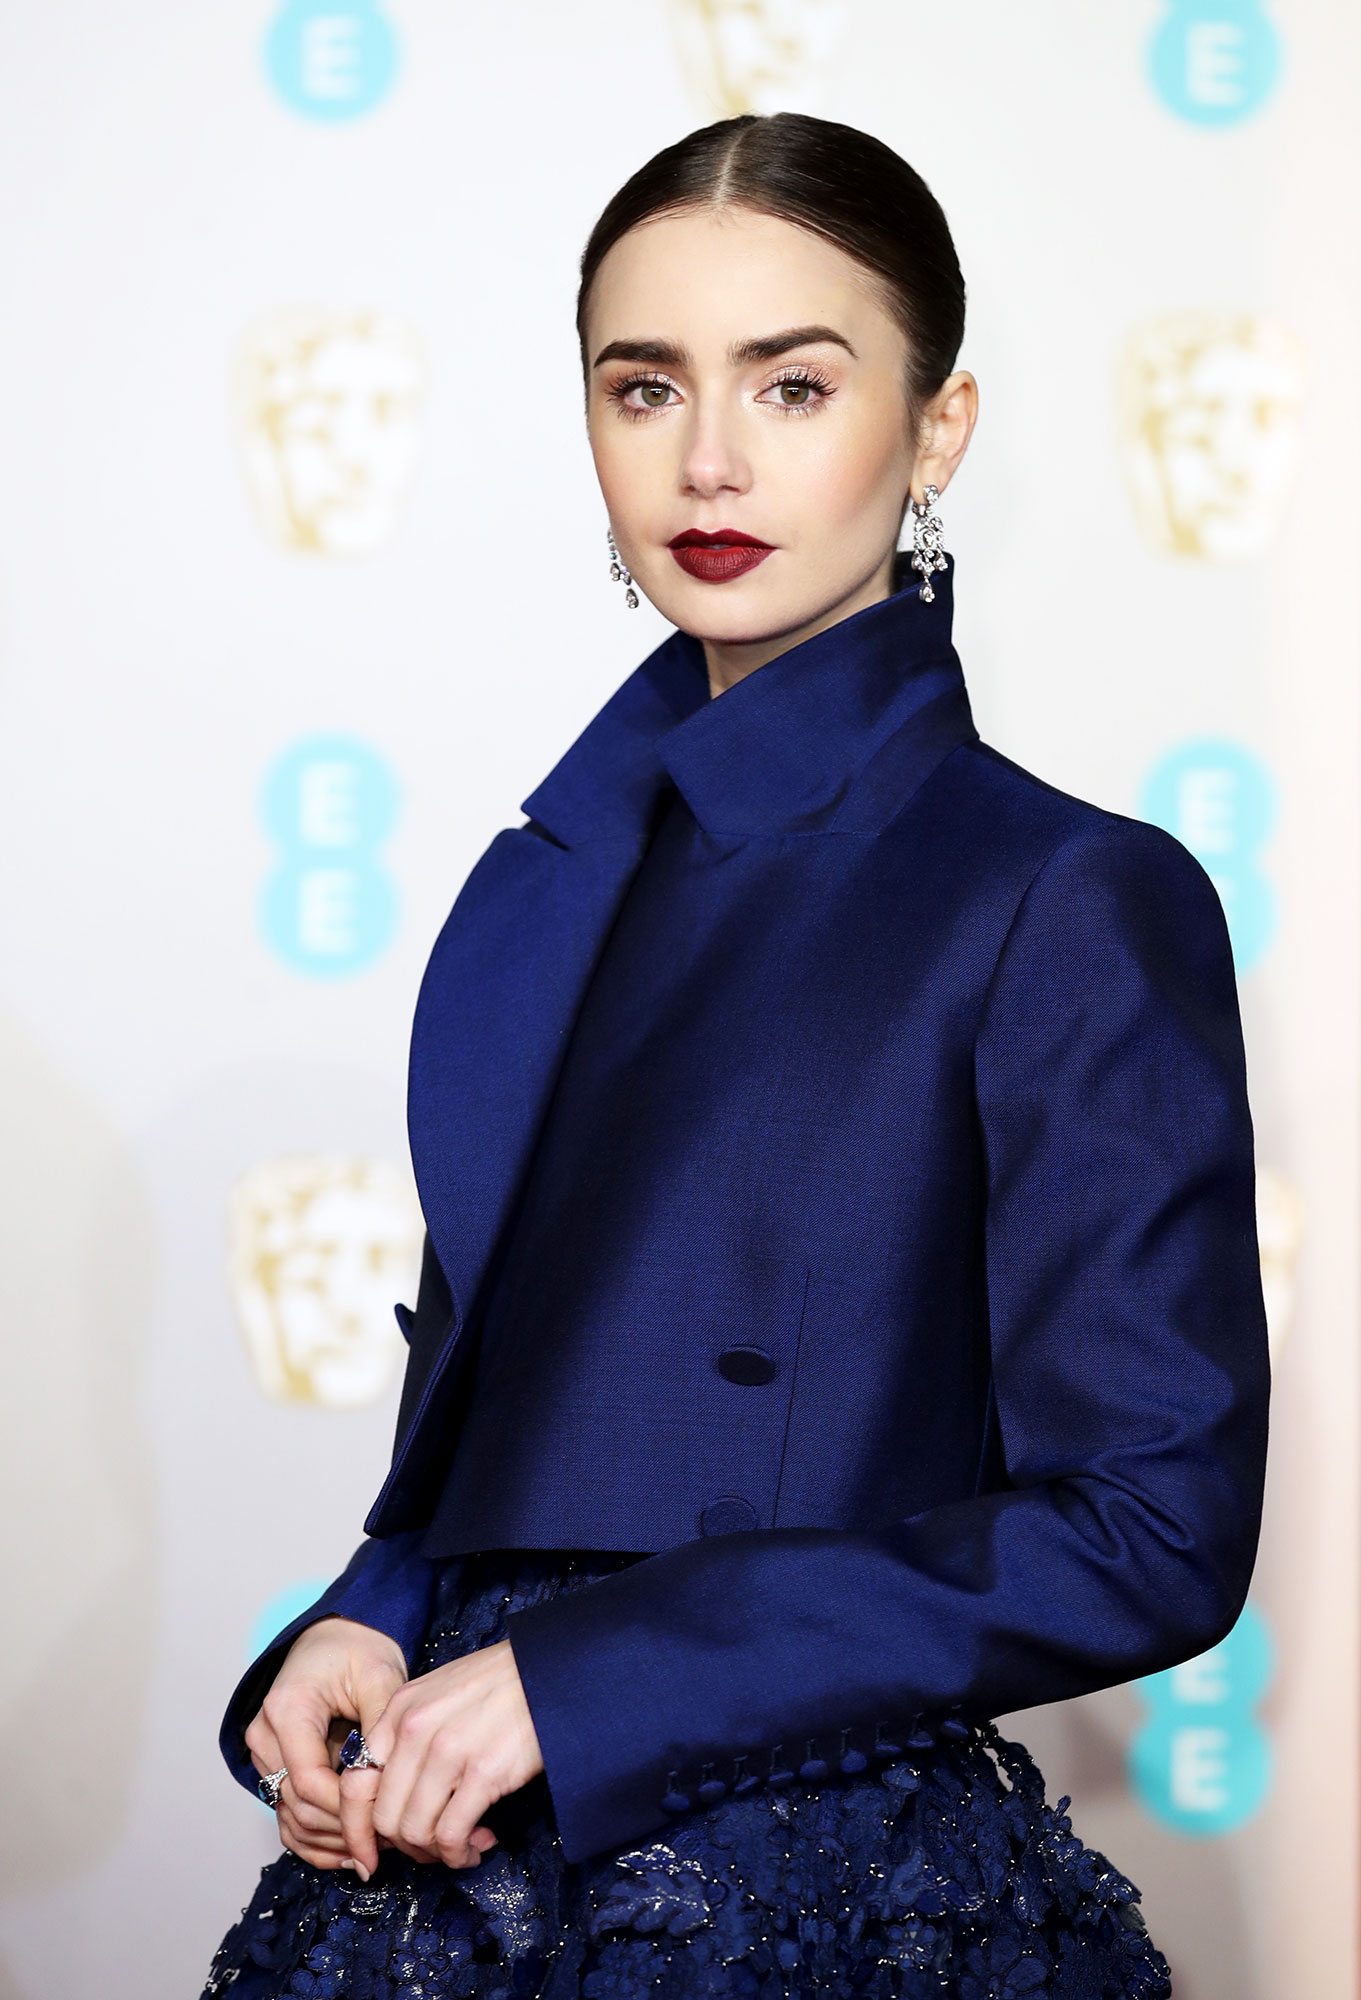 Lily Collins - Lily Collins attends the EE British Academy Film Awards at Royal Albert Hall on February 10, 2019 in London, England.